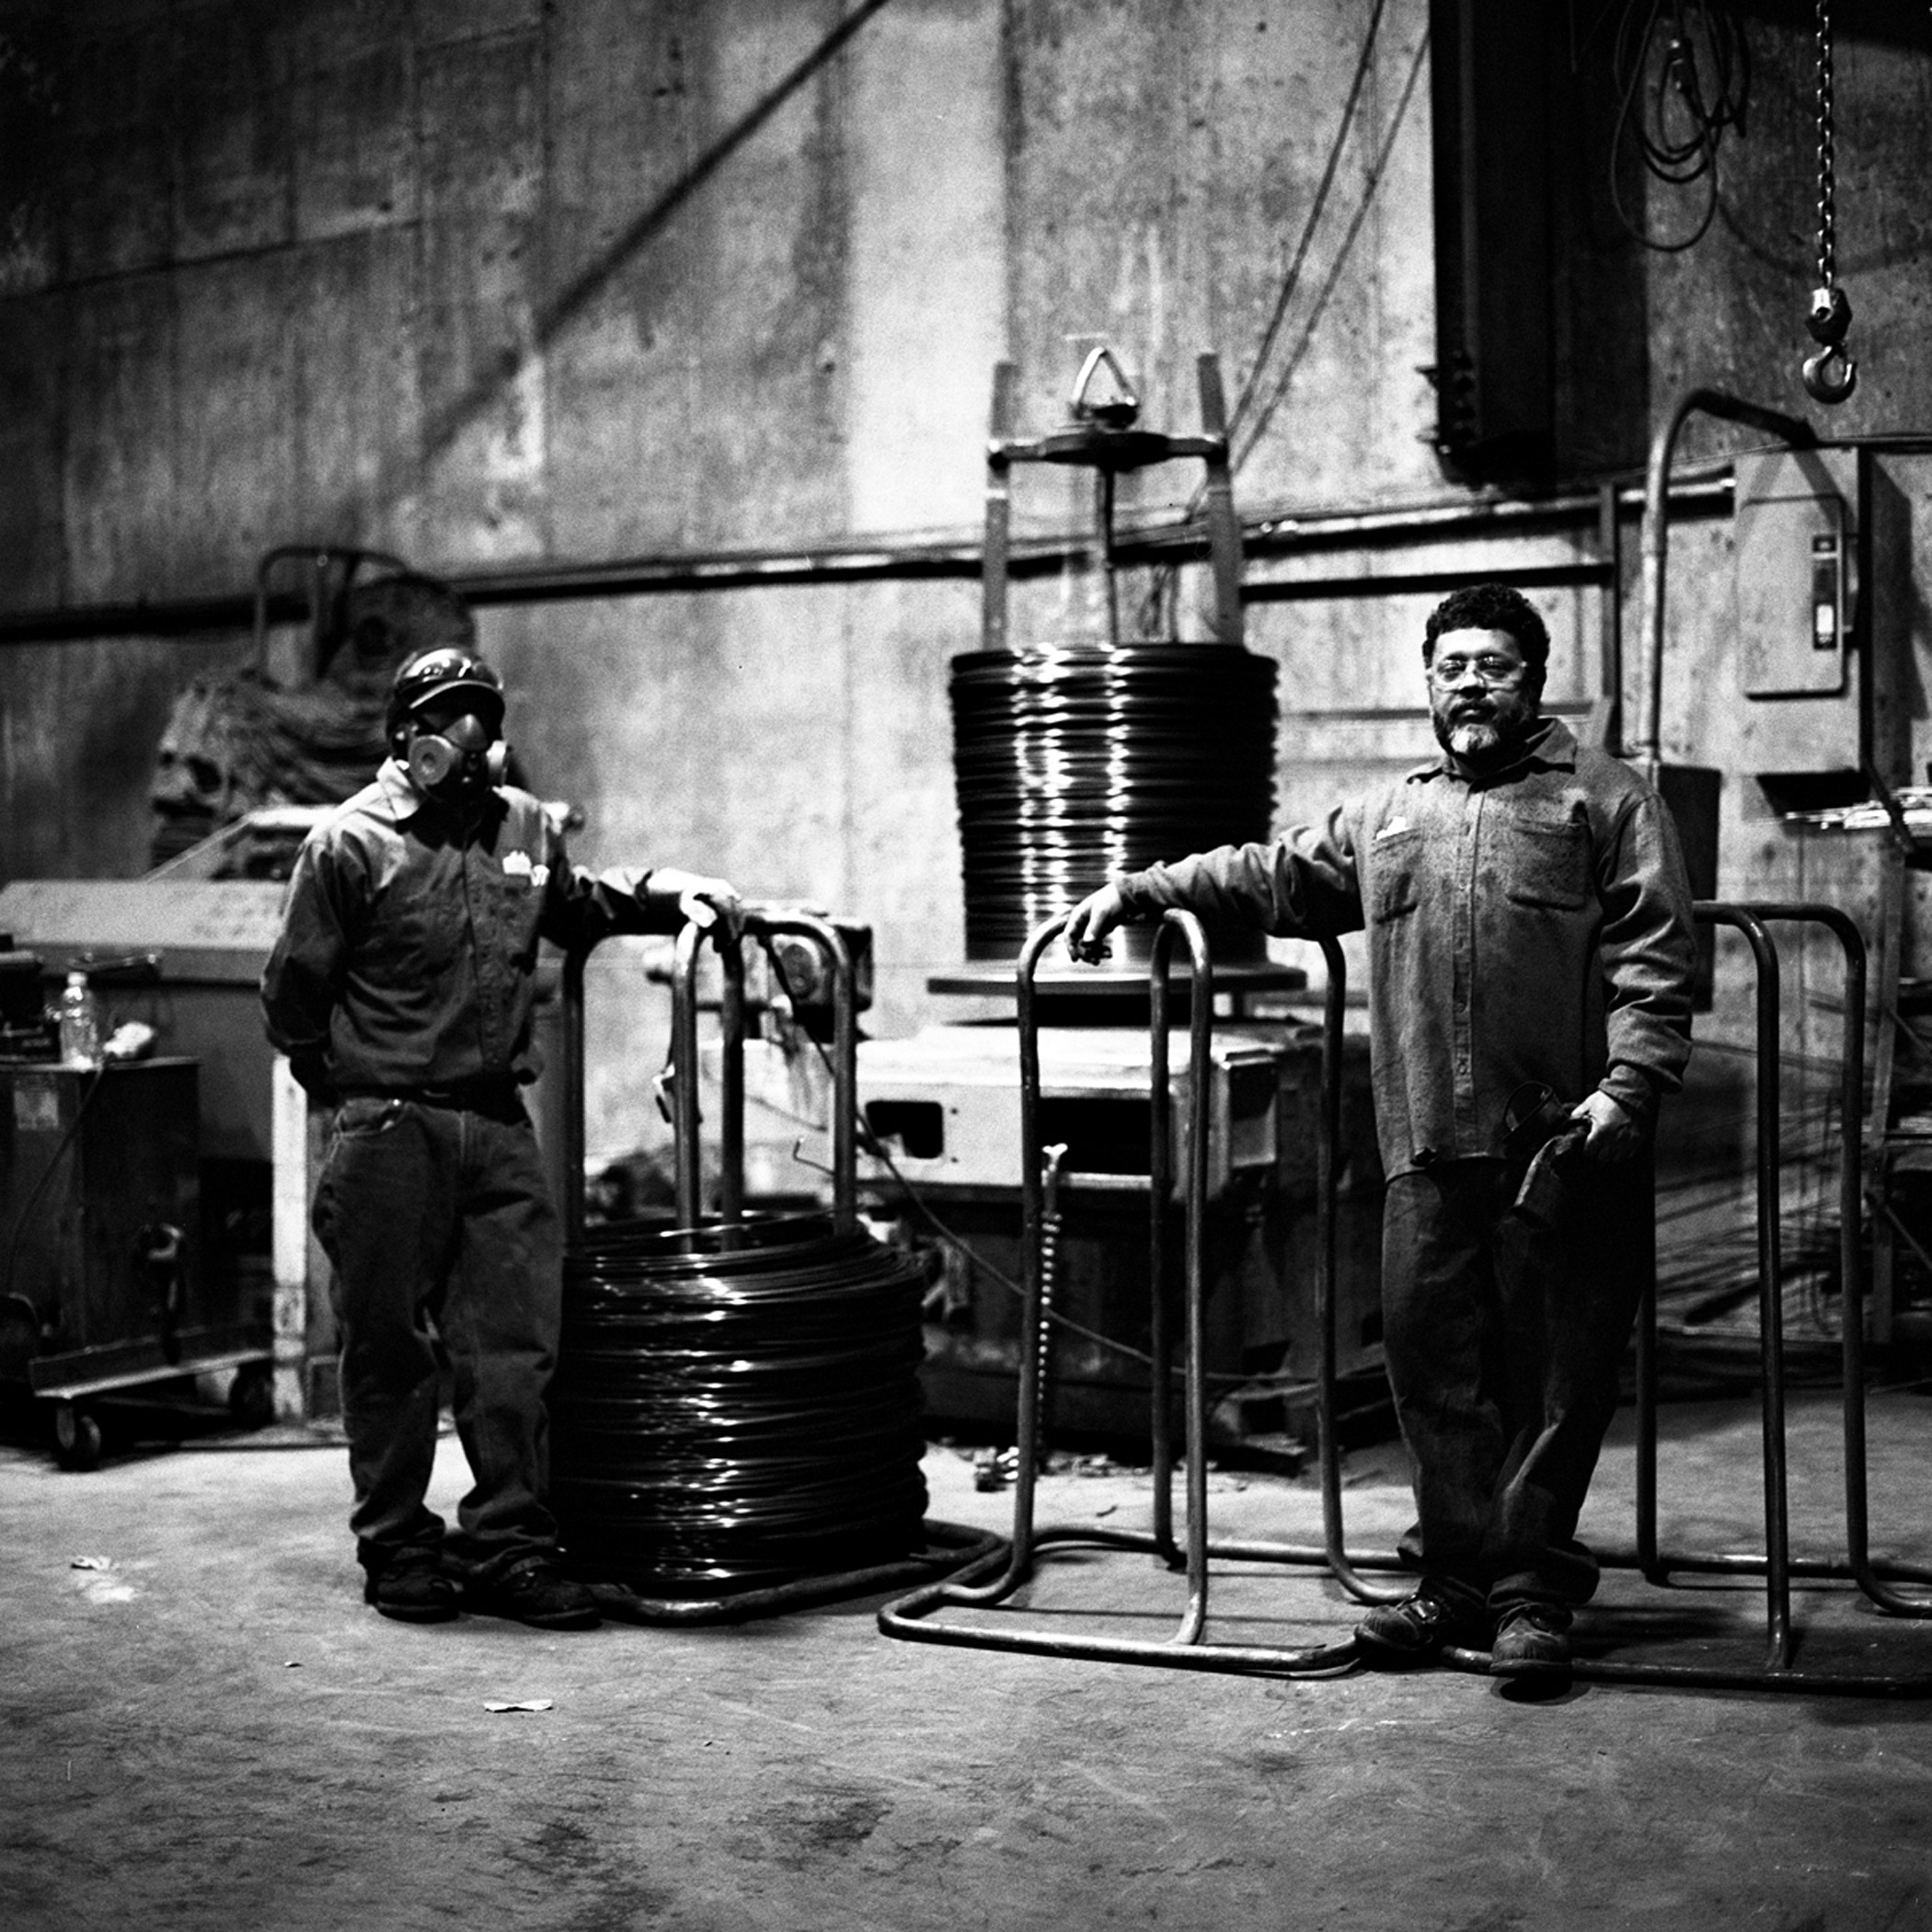 Angel, left, and Wilfredo by their post at the wire-straightener machine at Reinforcing Supply in Williamsburg, Brooklyn, N.Y., November 2015.